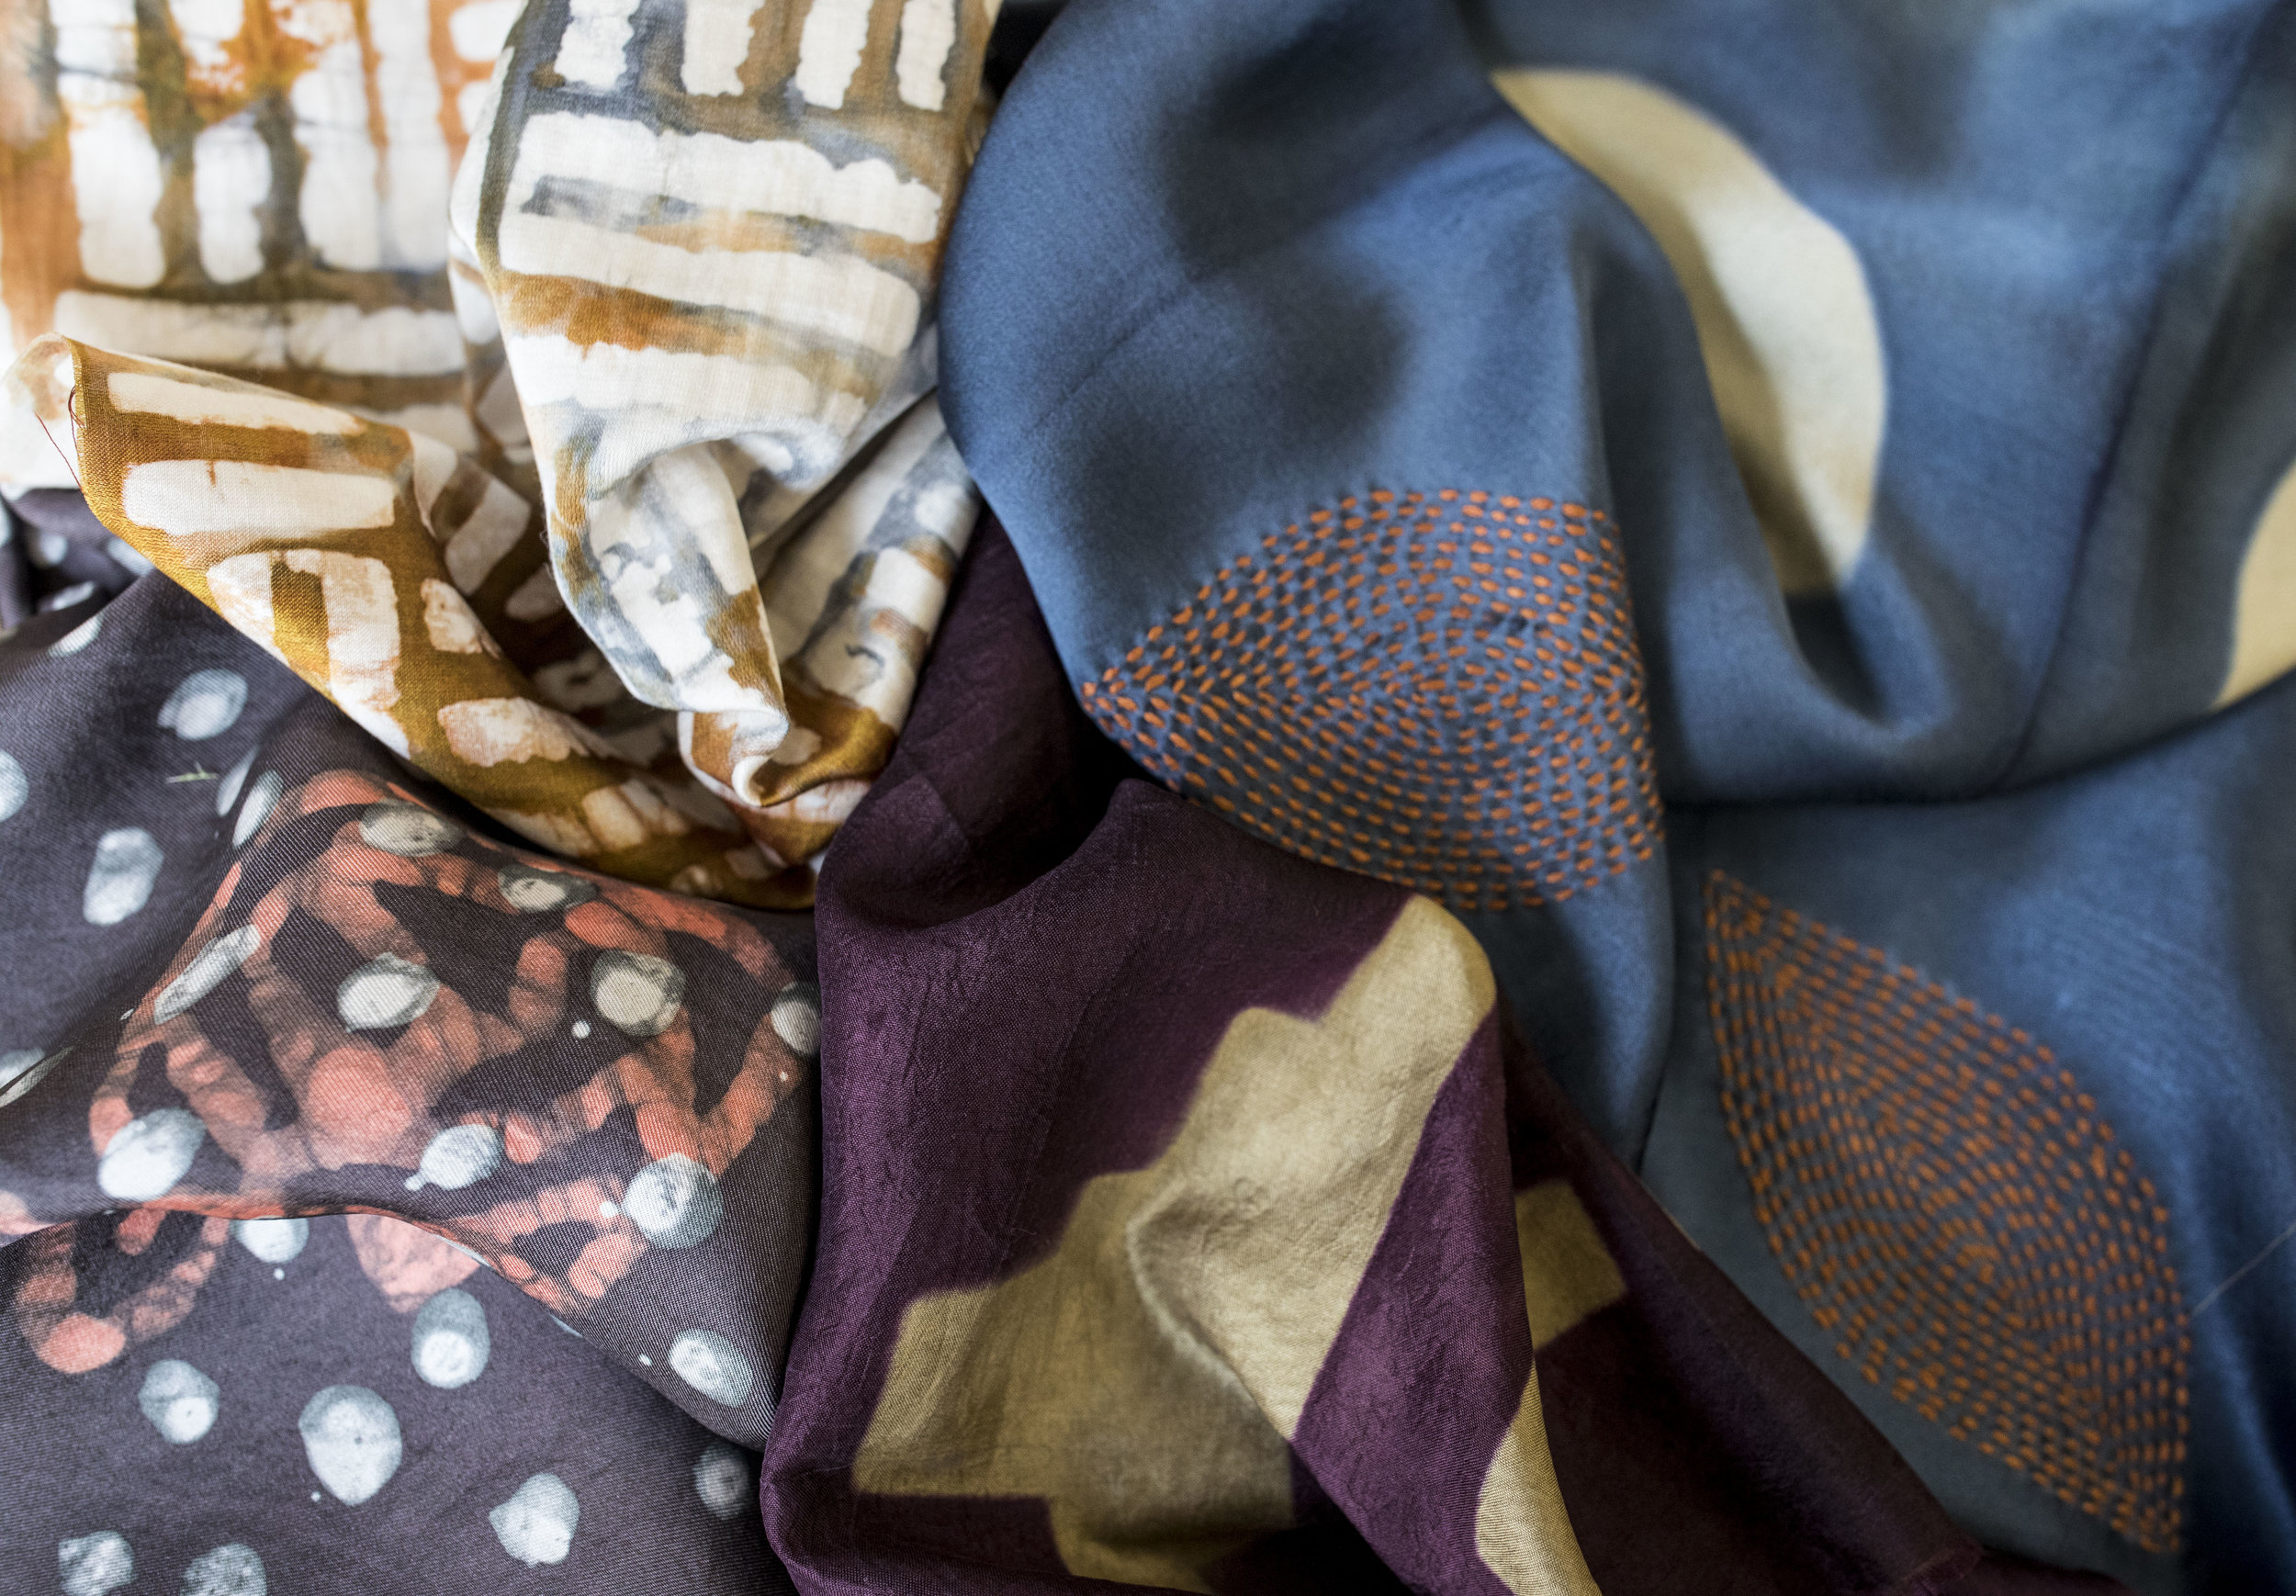 A juxtaposition of beautiful shibori fabric made by our artisan partners in India, and lovely batik fabric made by our artisan partners in Ghana.